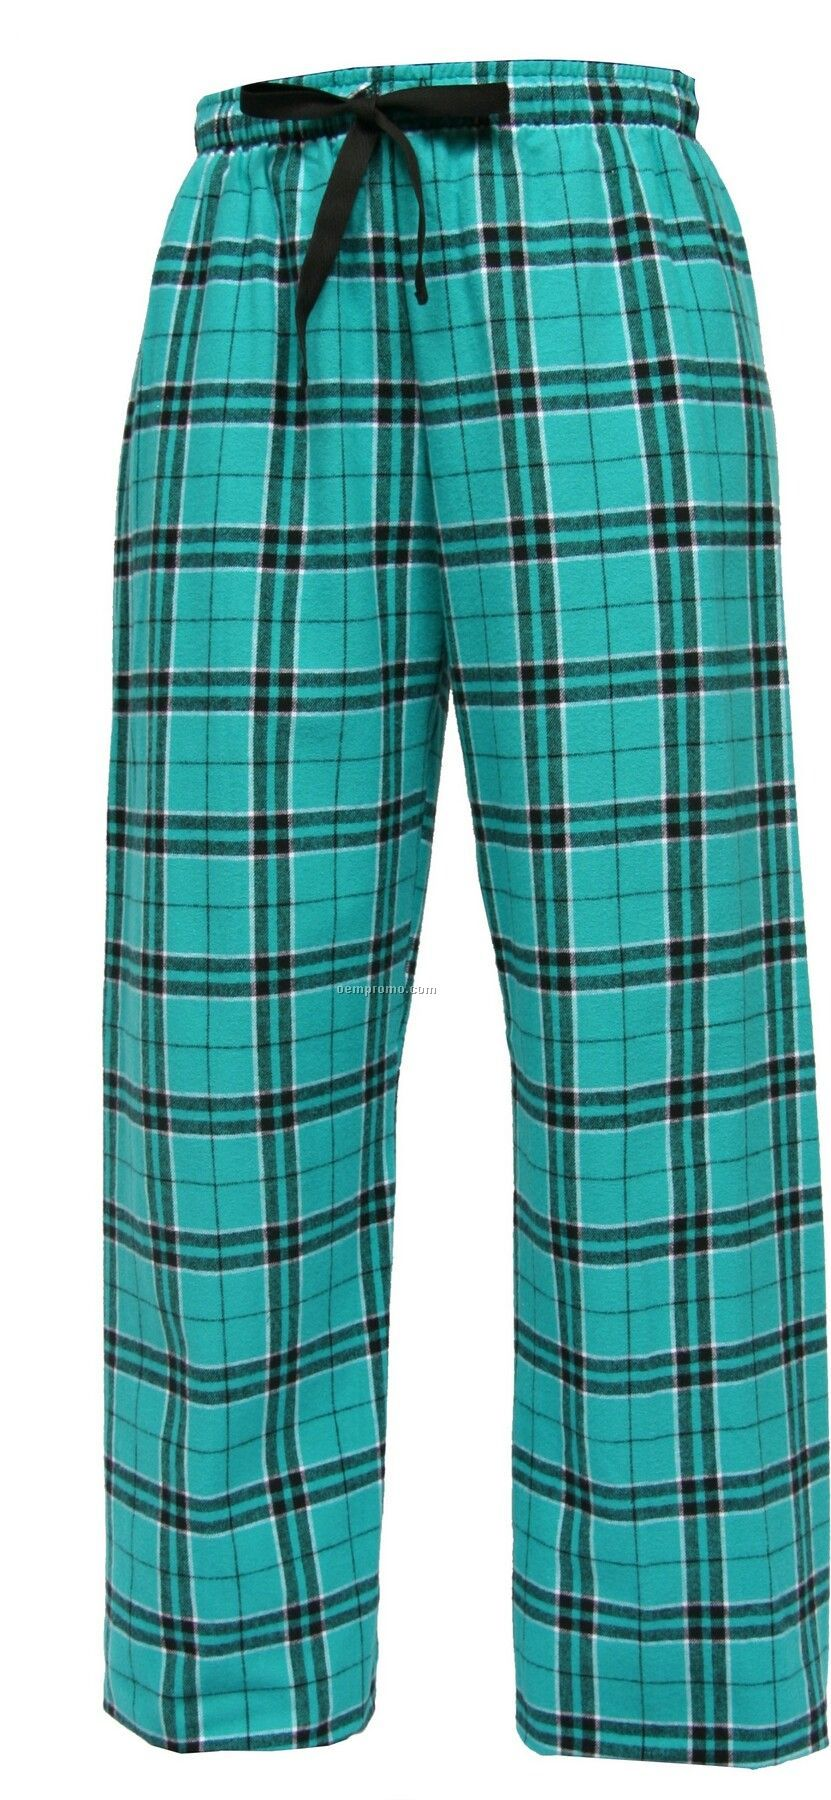 Youth Team Pride Flannel Pant In Teal Green & Black Plaid